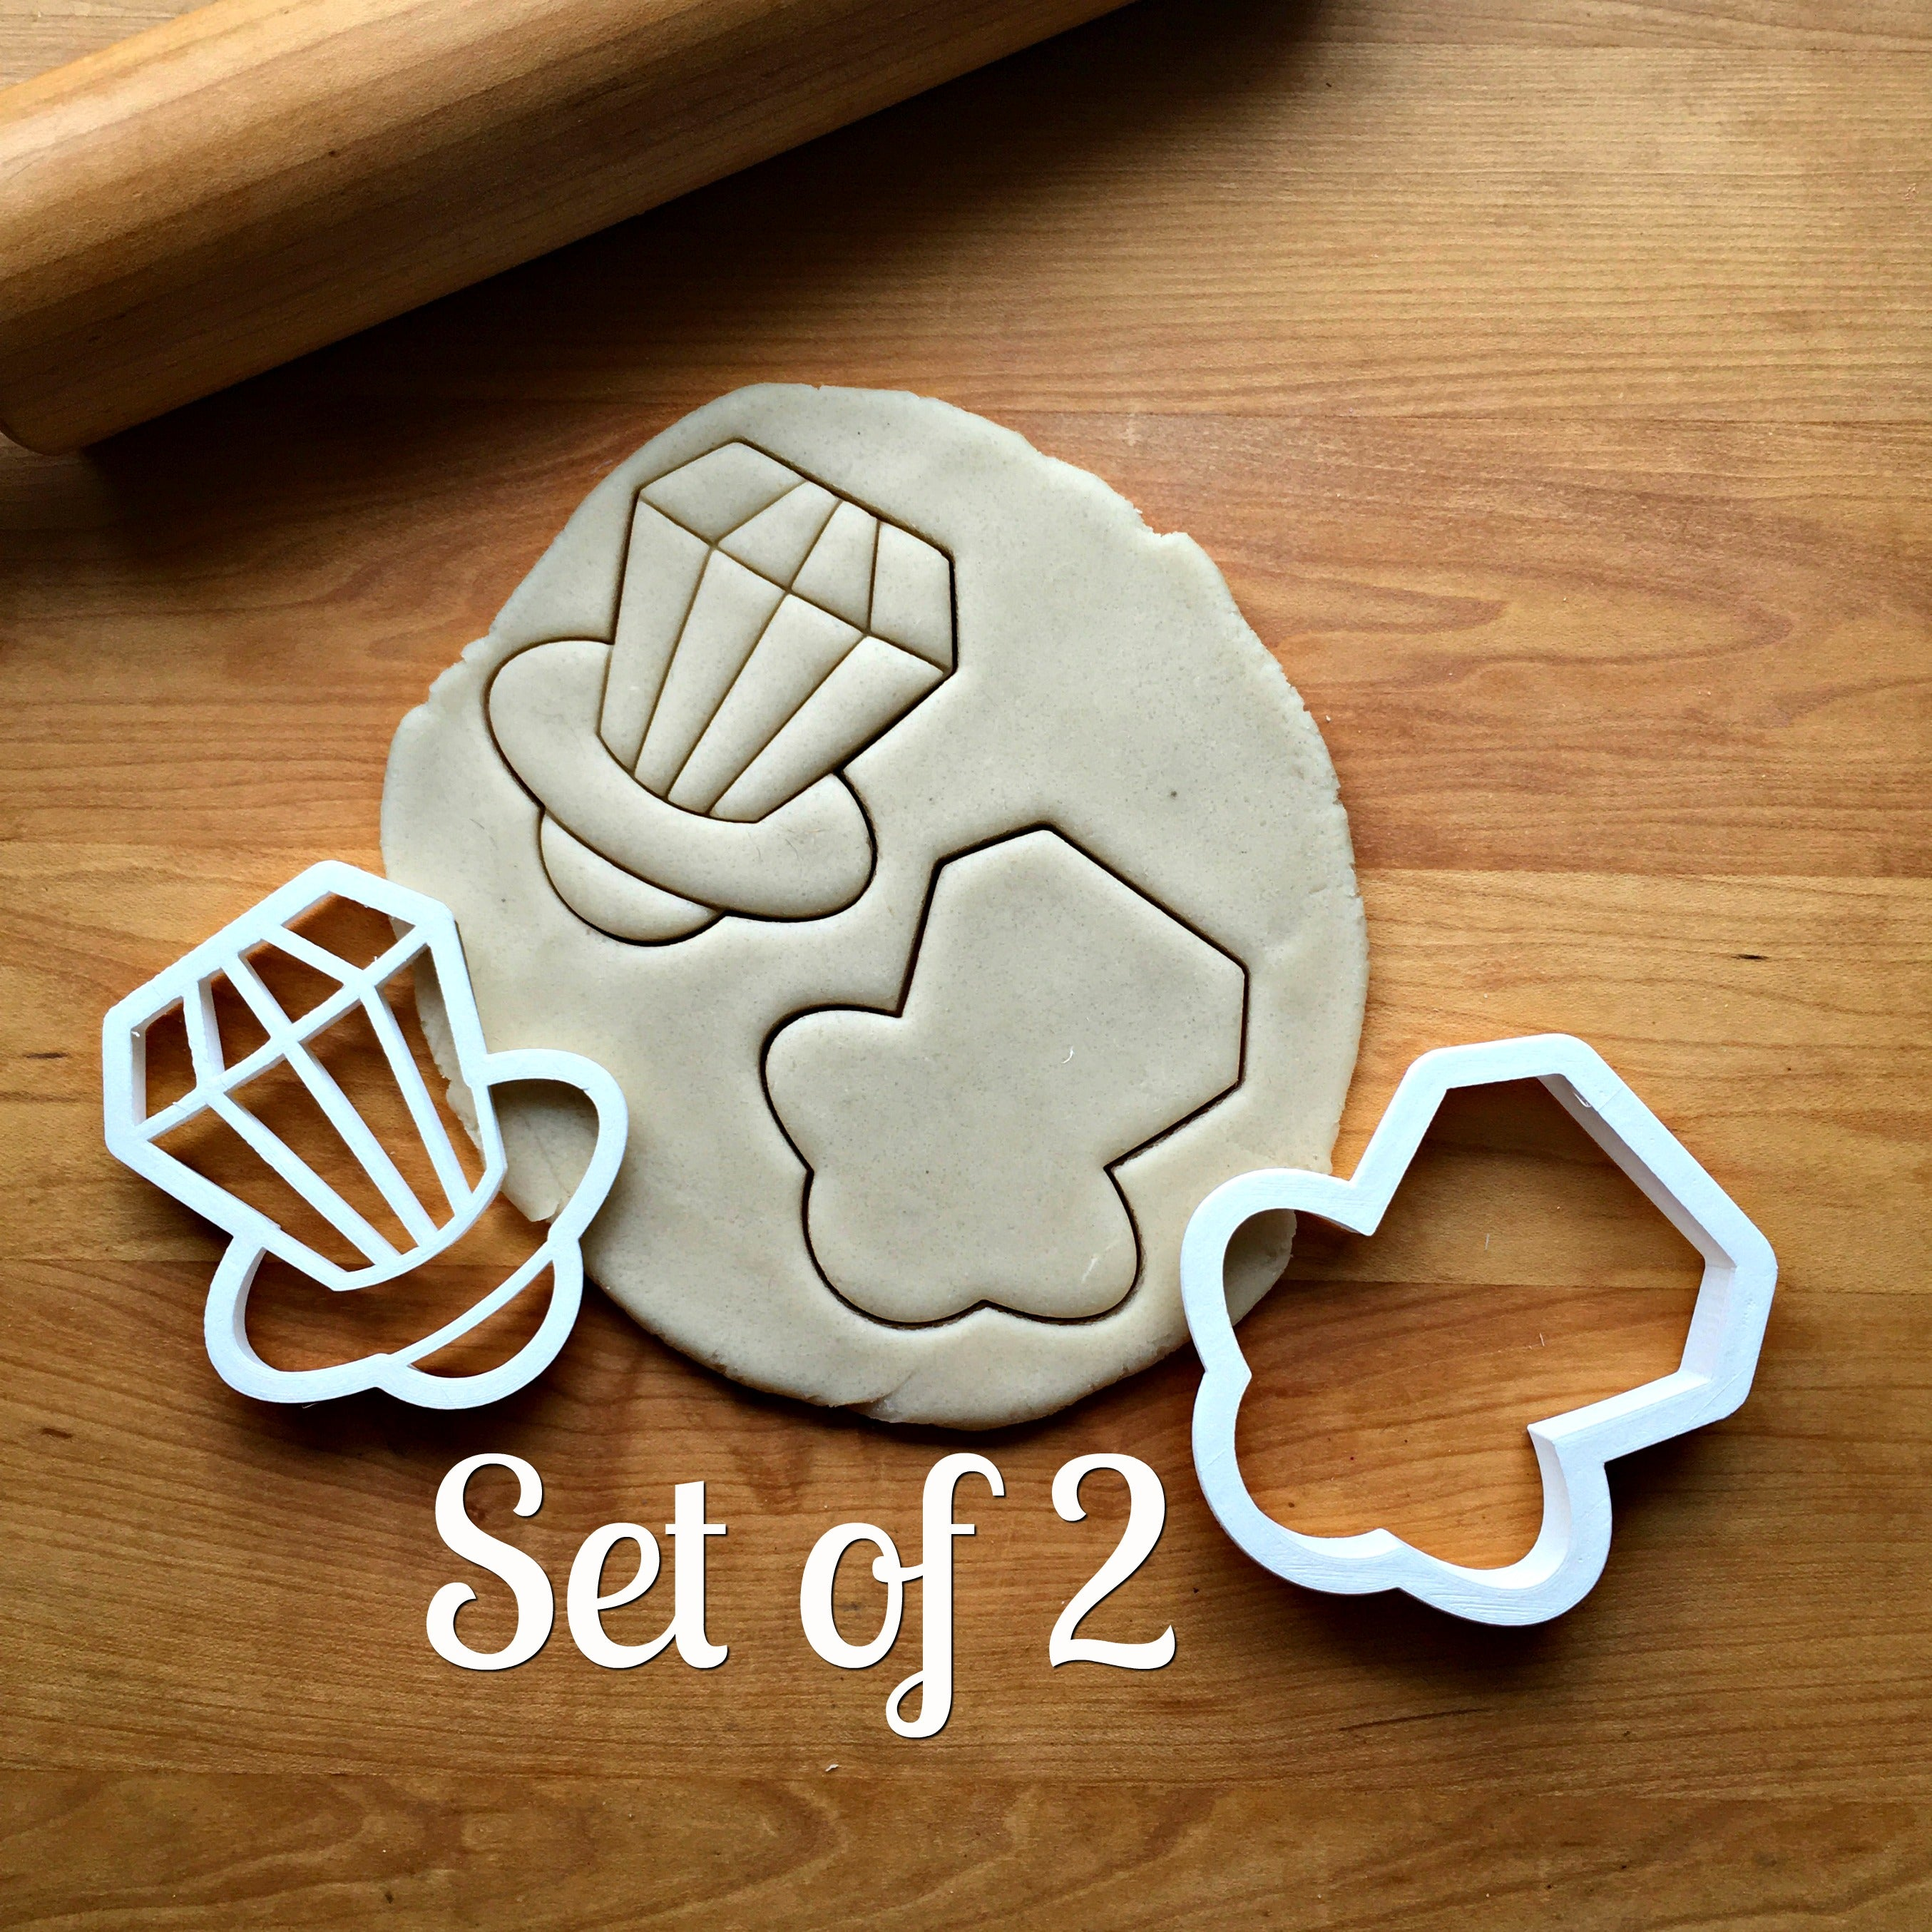 Set of 2 Candy Ring Cookie Cutters/Dishwasher Safe